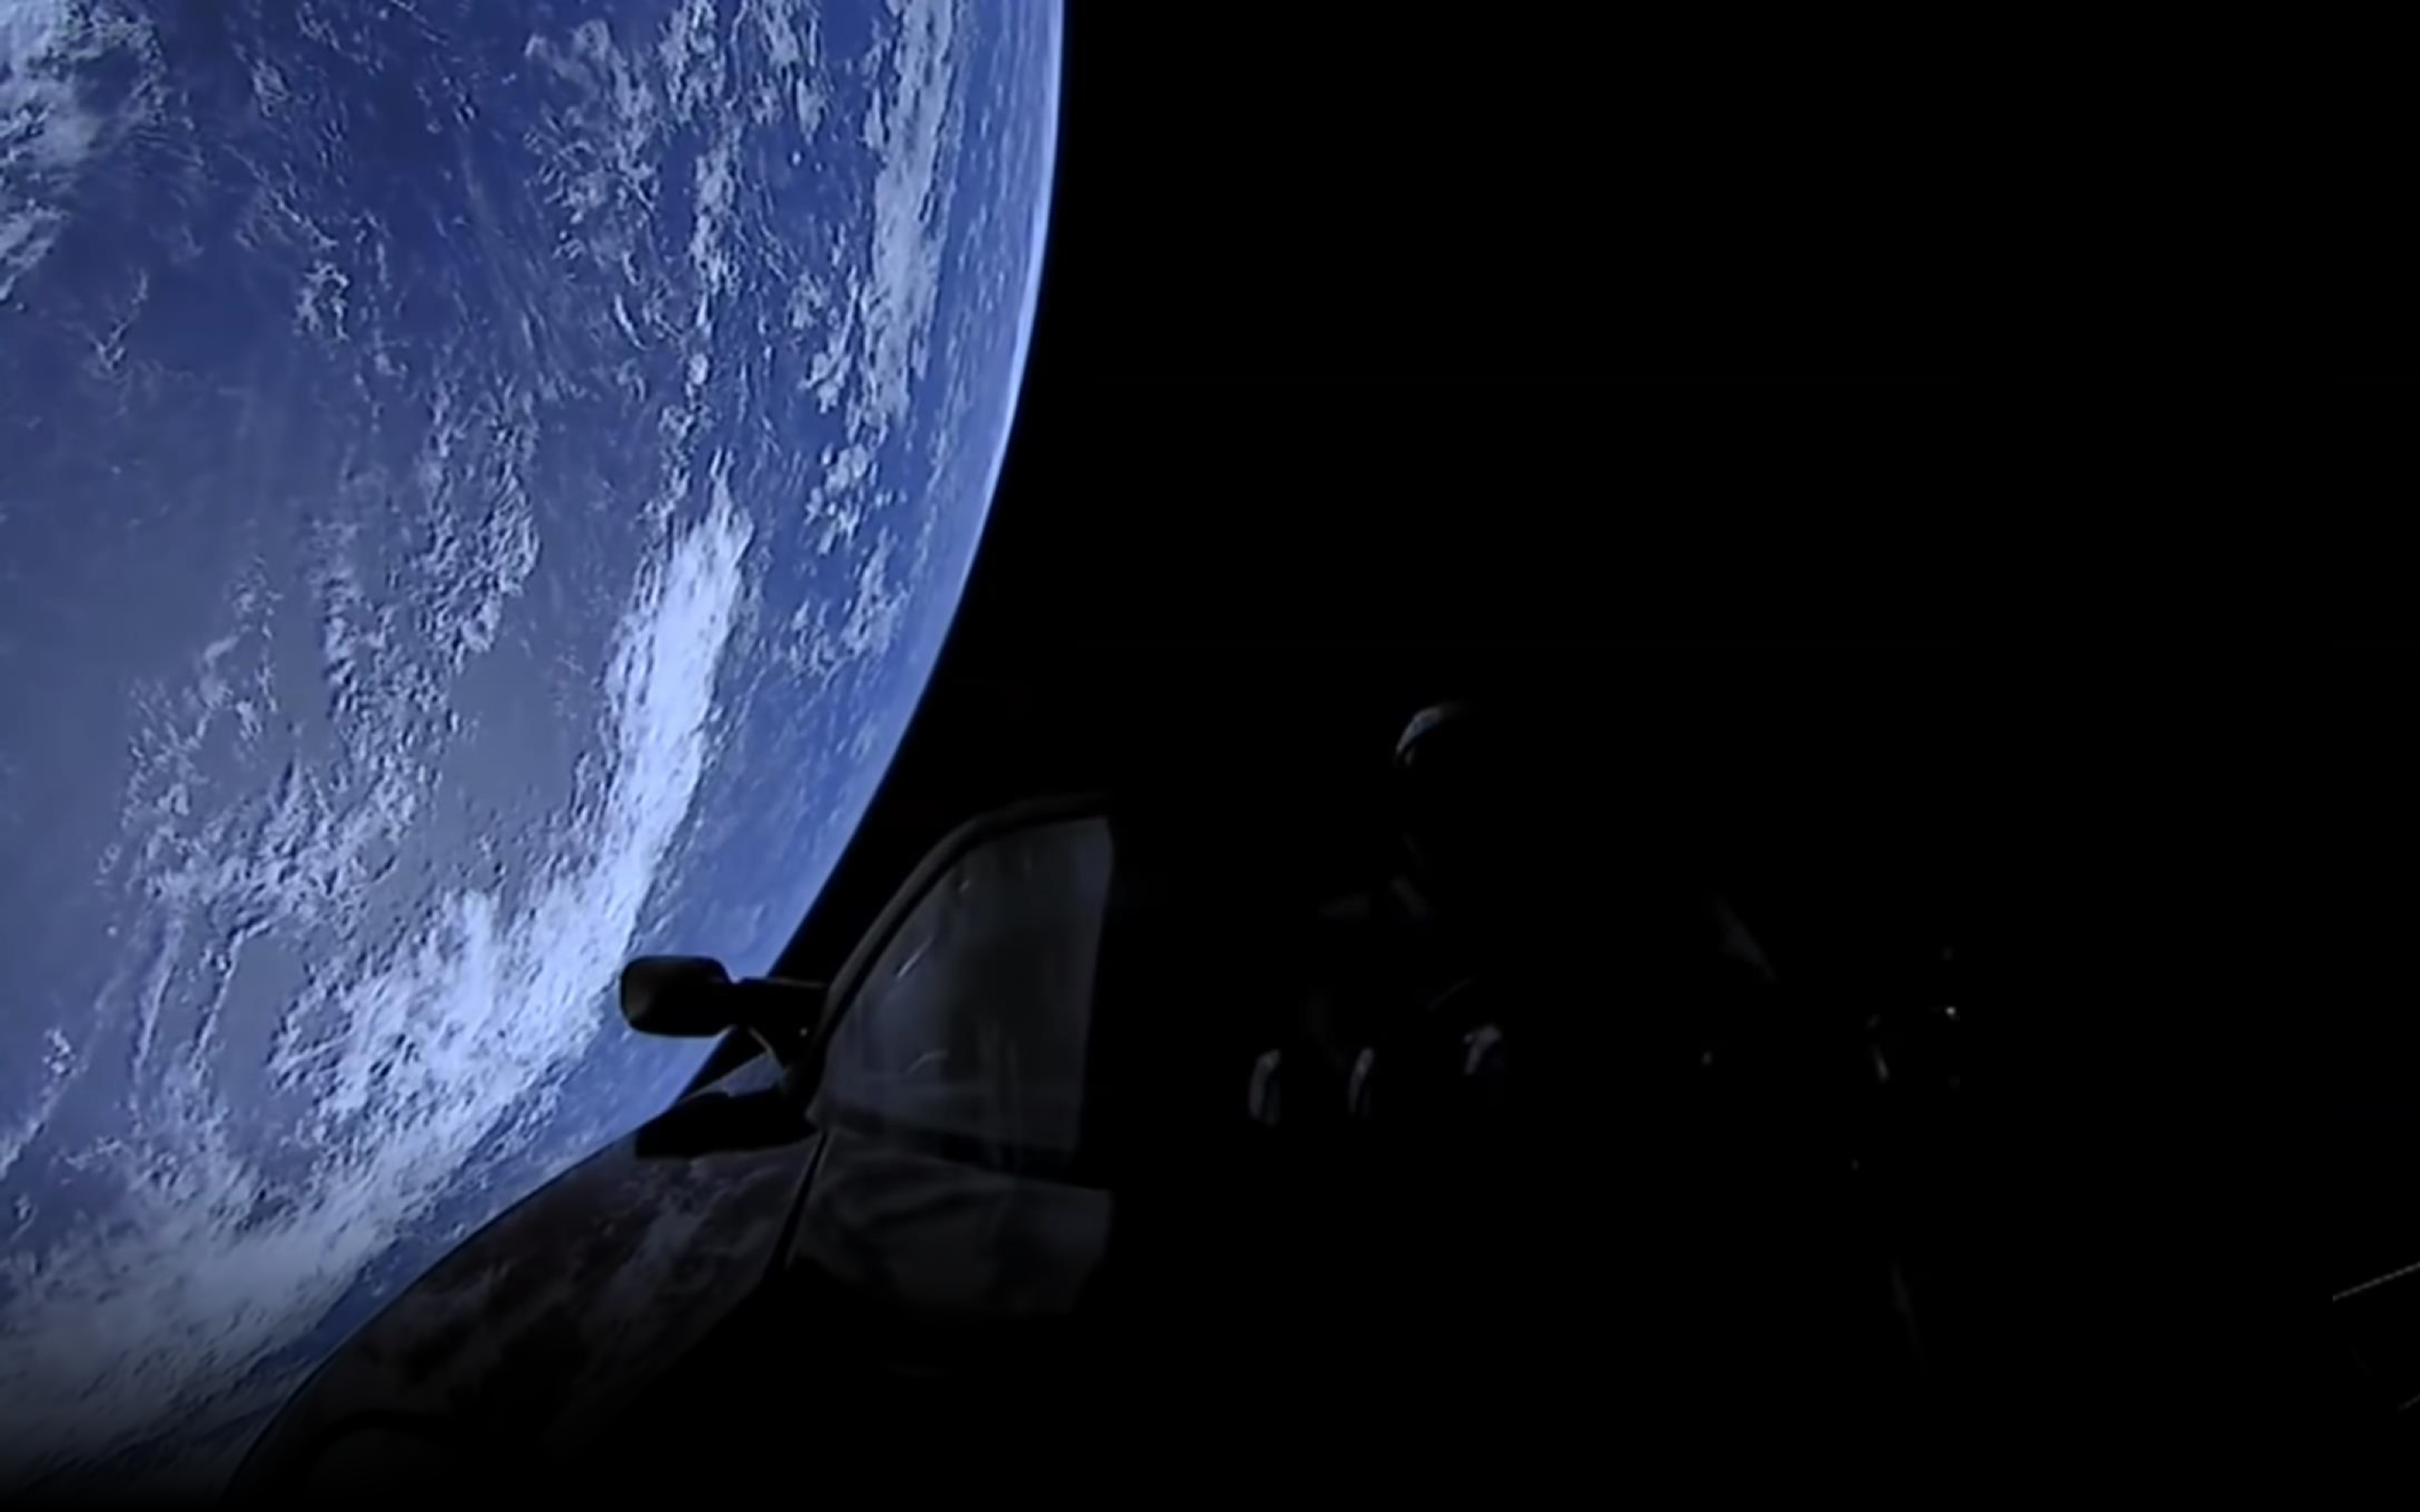 Silhouette of a Roadster in space flying over Earth